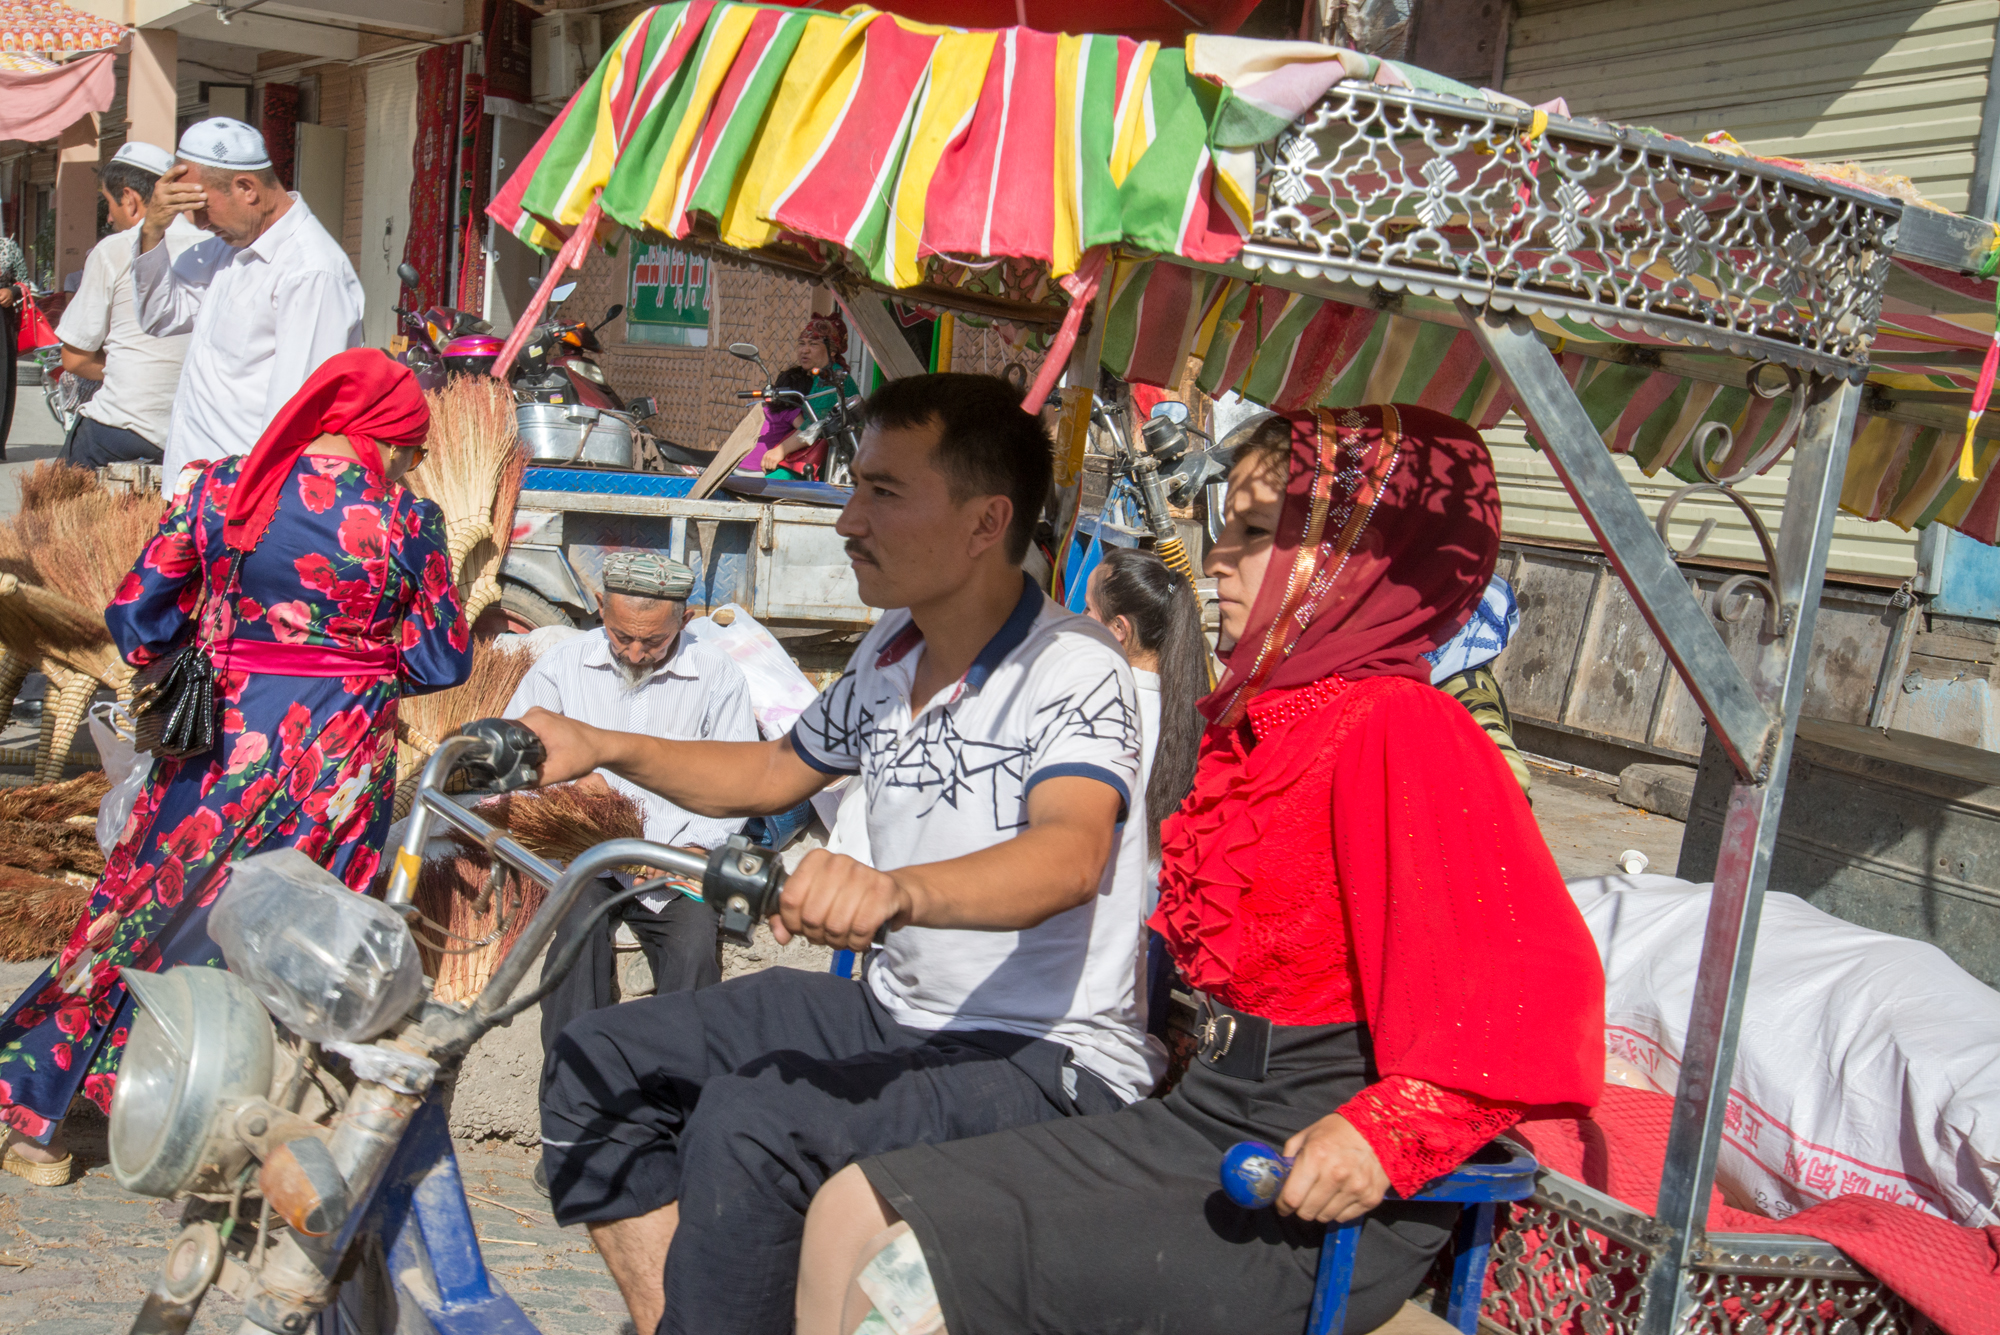 Uyghur Couple on Motorcycle Truck